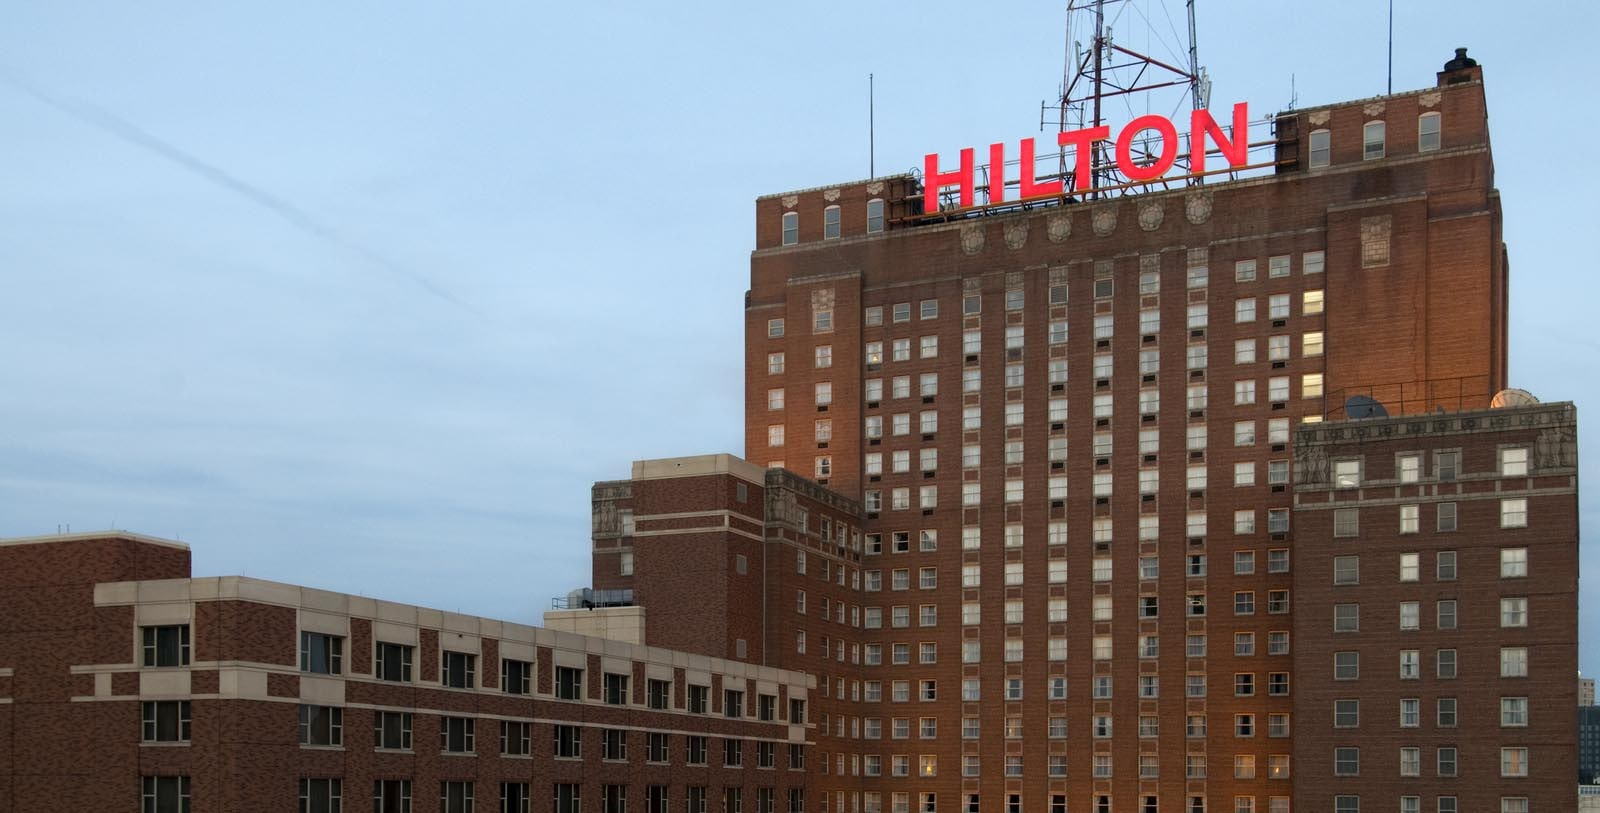 Image of hotel exterior Hilton Milwaukee City Center, 1928, Member of Historic Hotels of America, in Milwaukee, Wisconsin, Overview